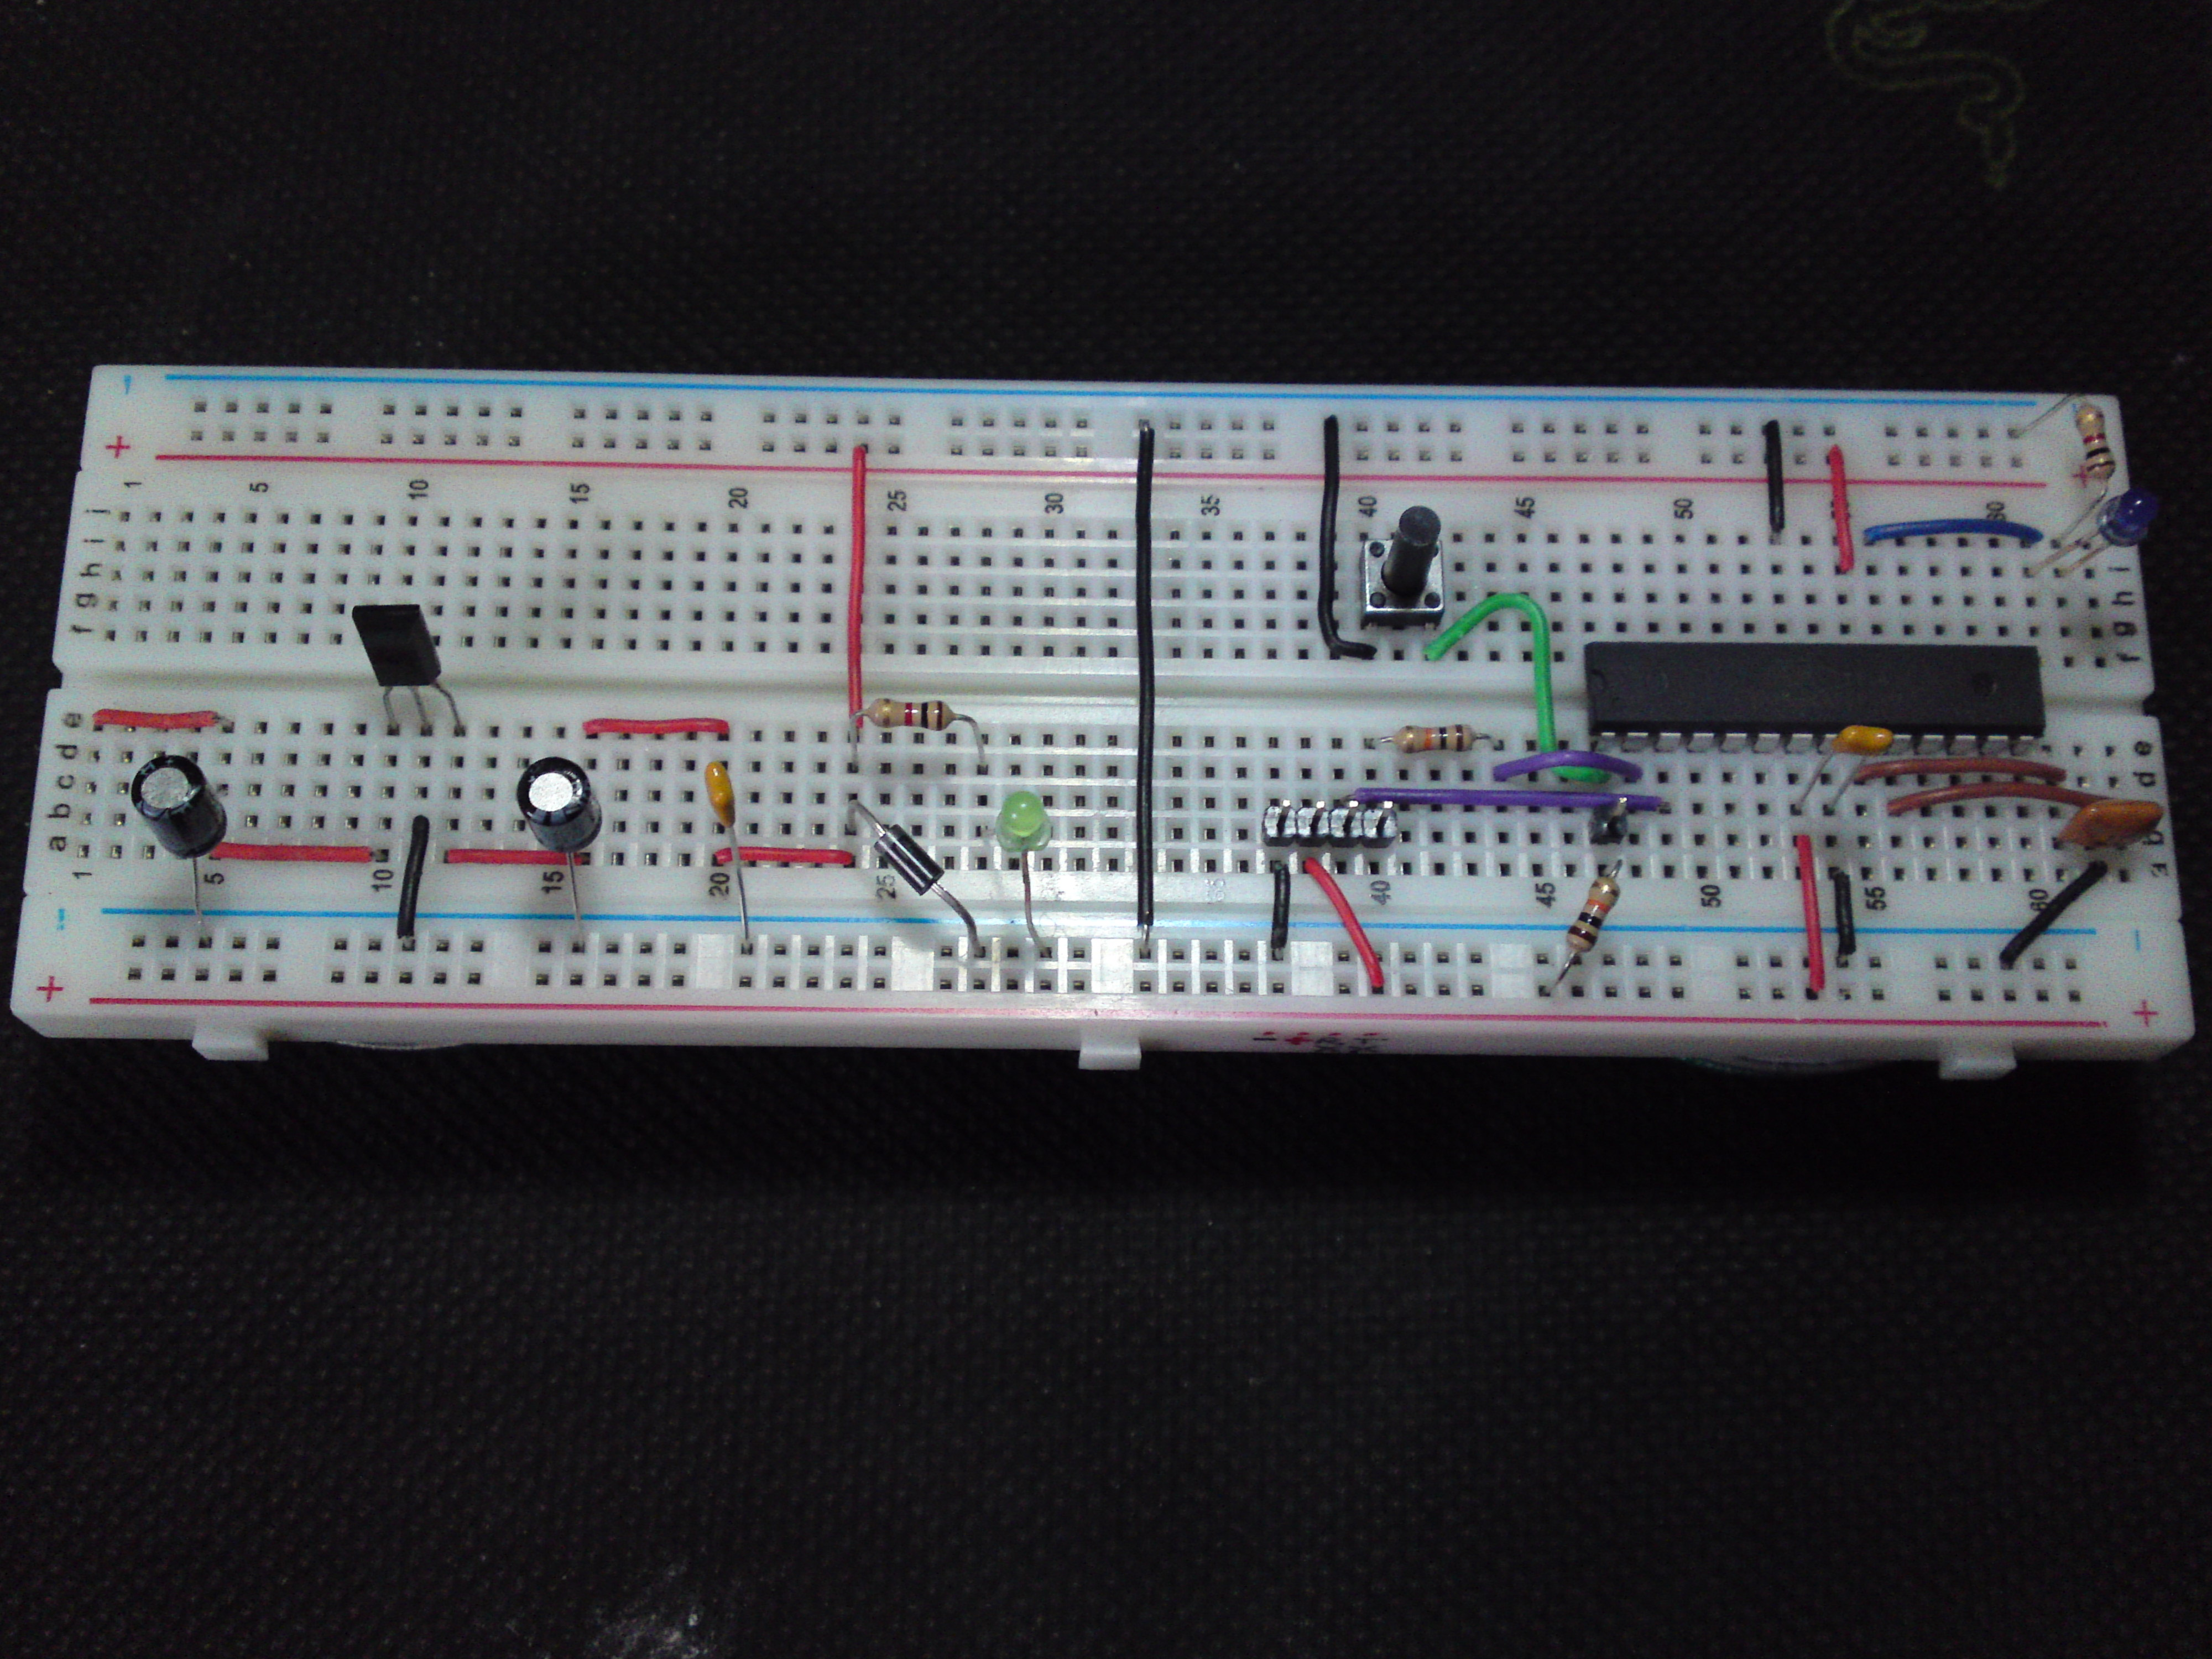 How To Make The Easiest Breadboard Arduino Uno...EVER ! - The Breduino ! (& How to Upload Sketches Straight to it !!) With Additional Hardware Options - UPDATED - JULY 2013